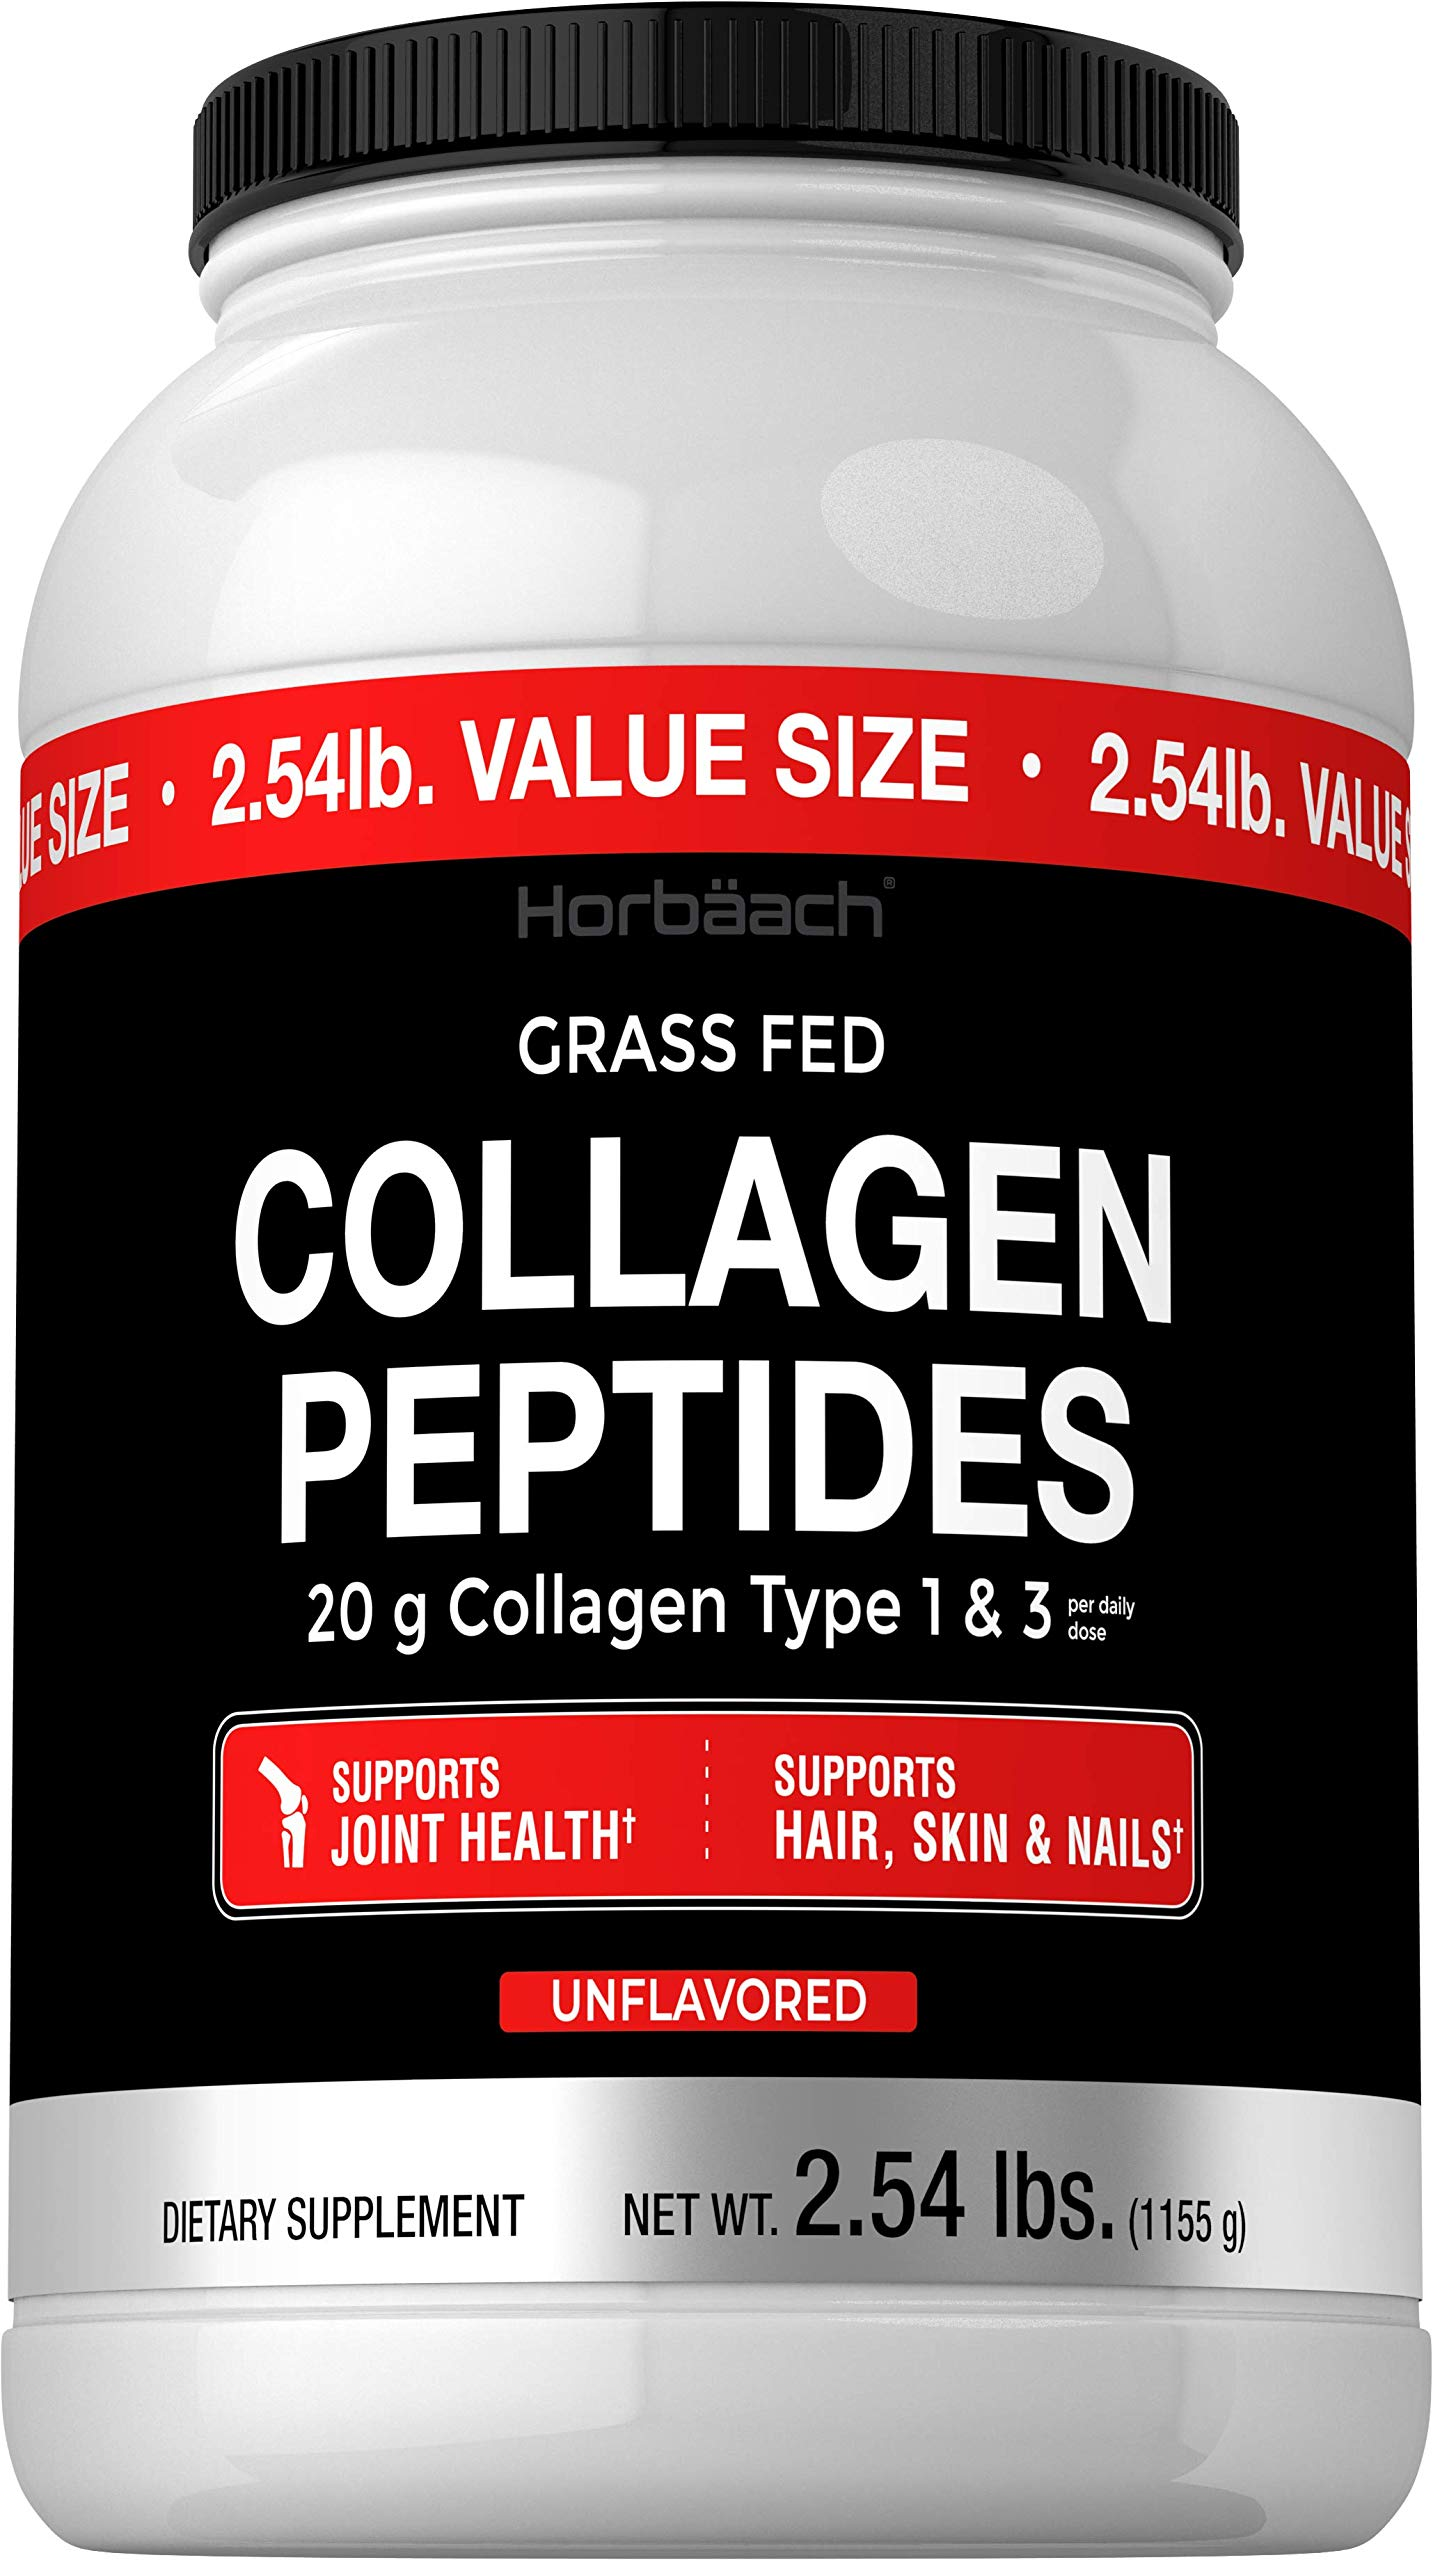 Collagen Peptide Powder 40 oz | Unflavored | Type 1 and 3 | Keto and Paleo Friendly Supplement | Hydrolyzed Protein Collagen | Non-GMO, Gluten Free, Grass Fed | Horbaach